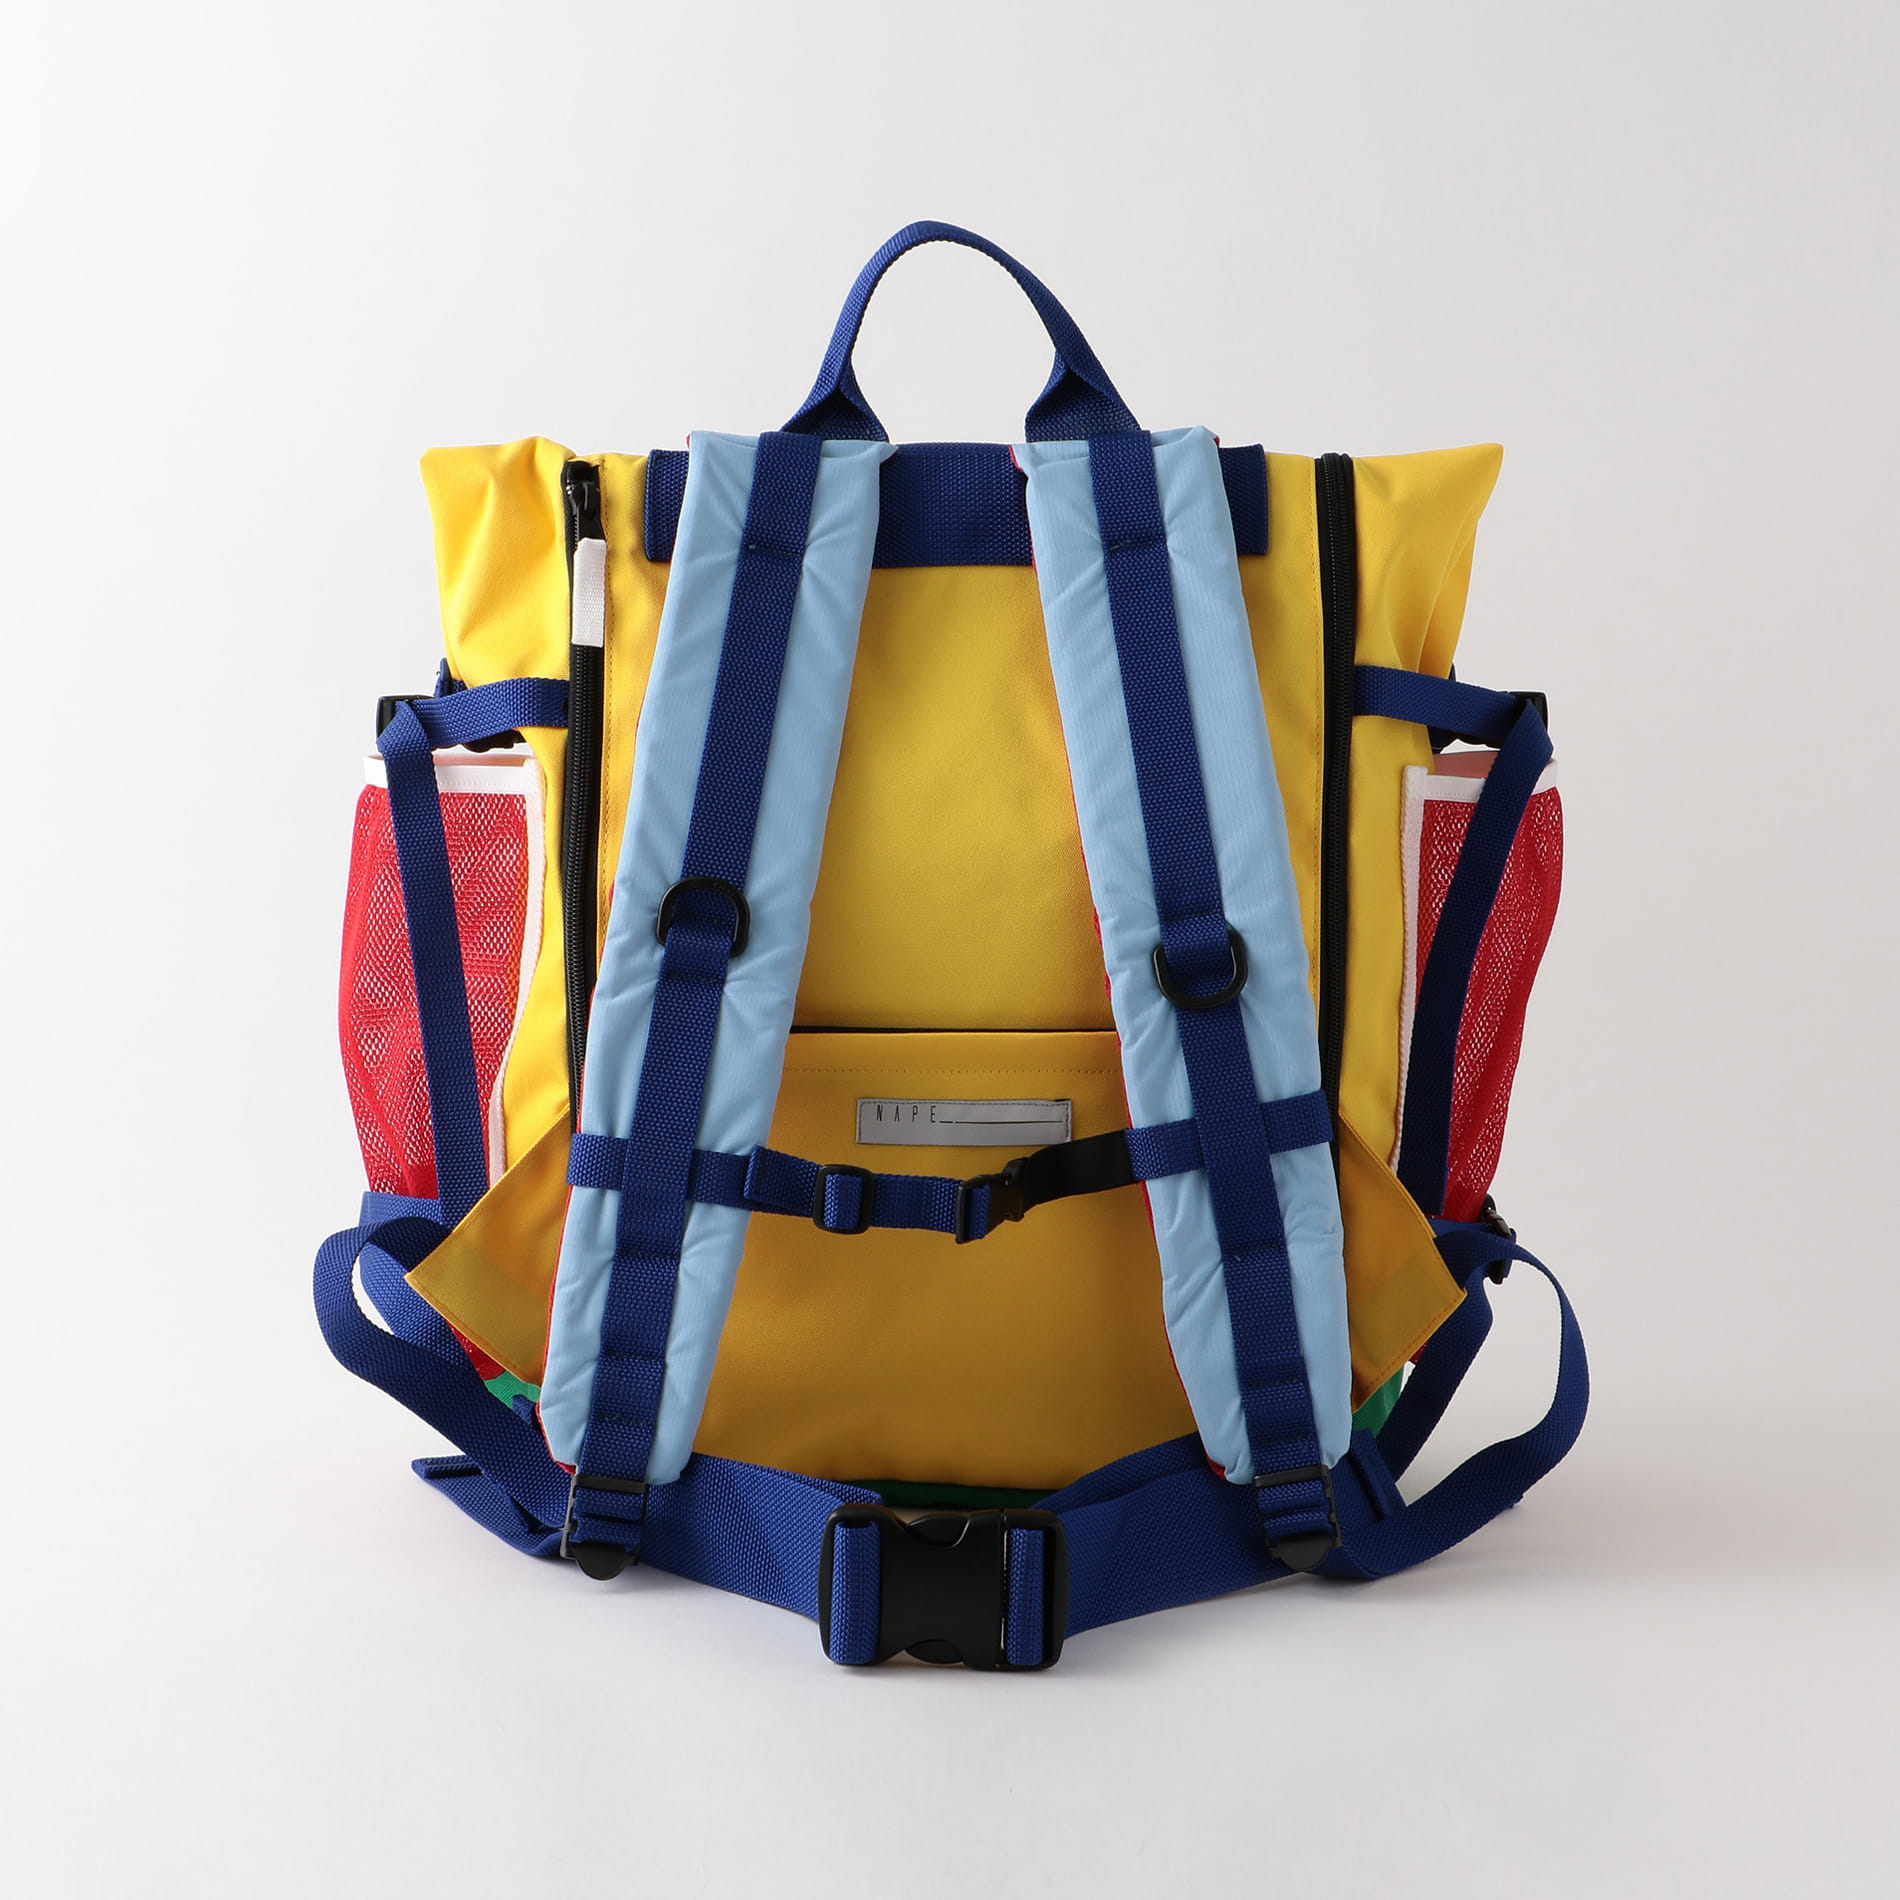 【NAPE】バックパック OVER DOSE BACK PACK